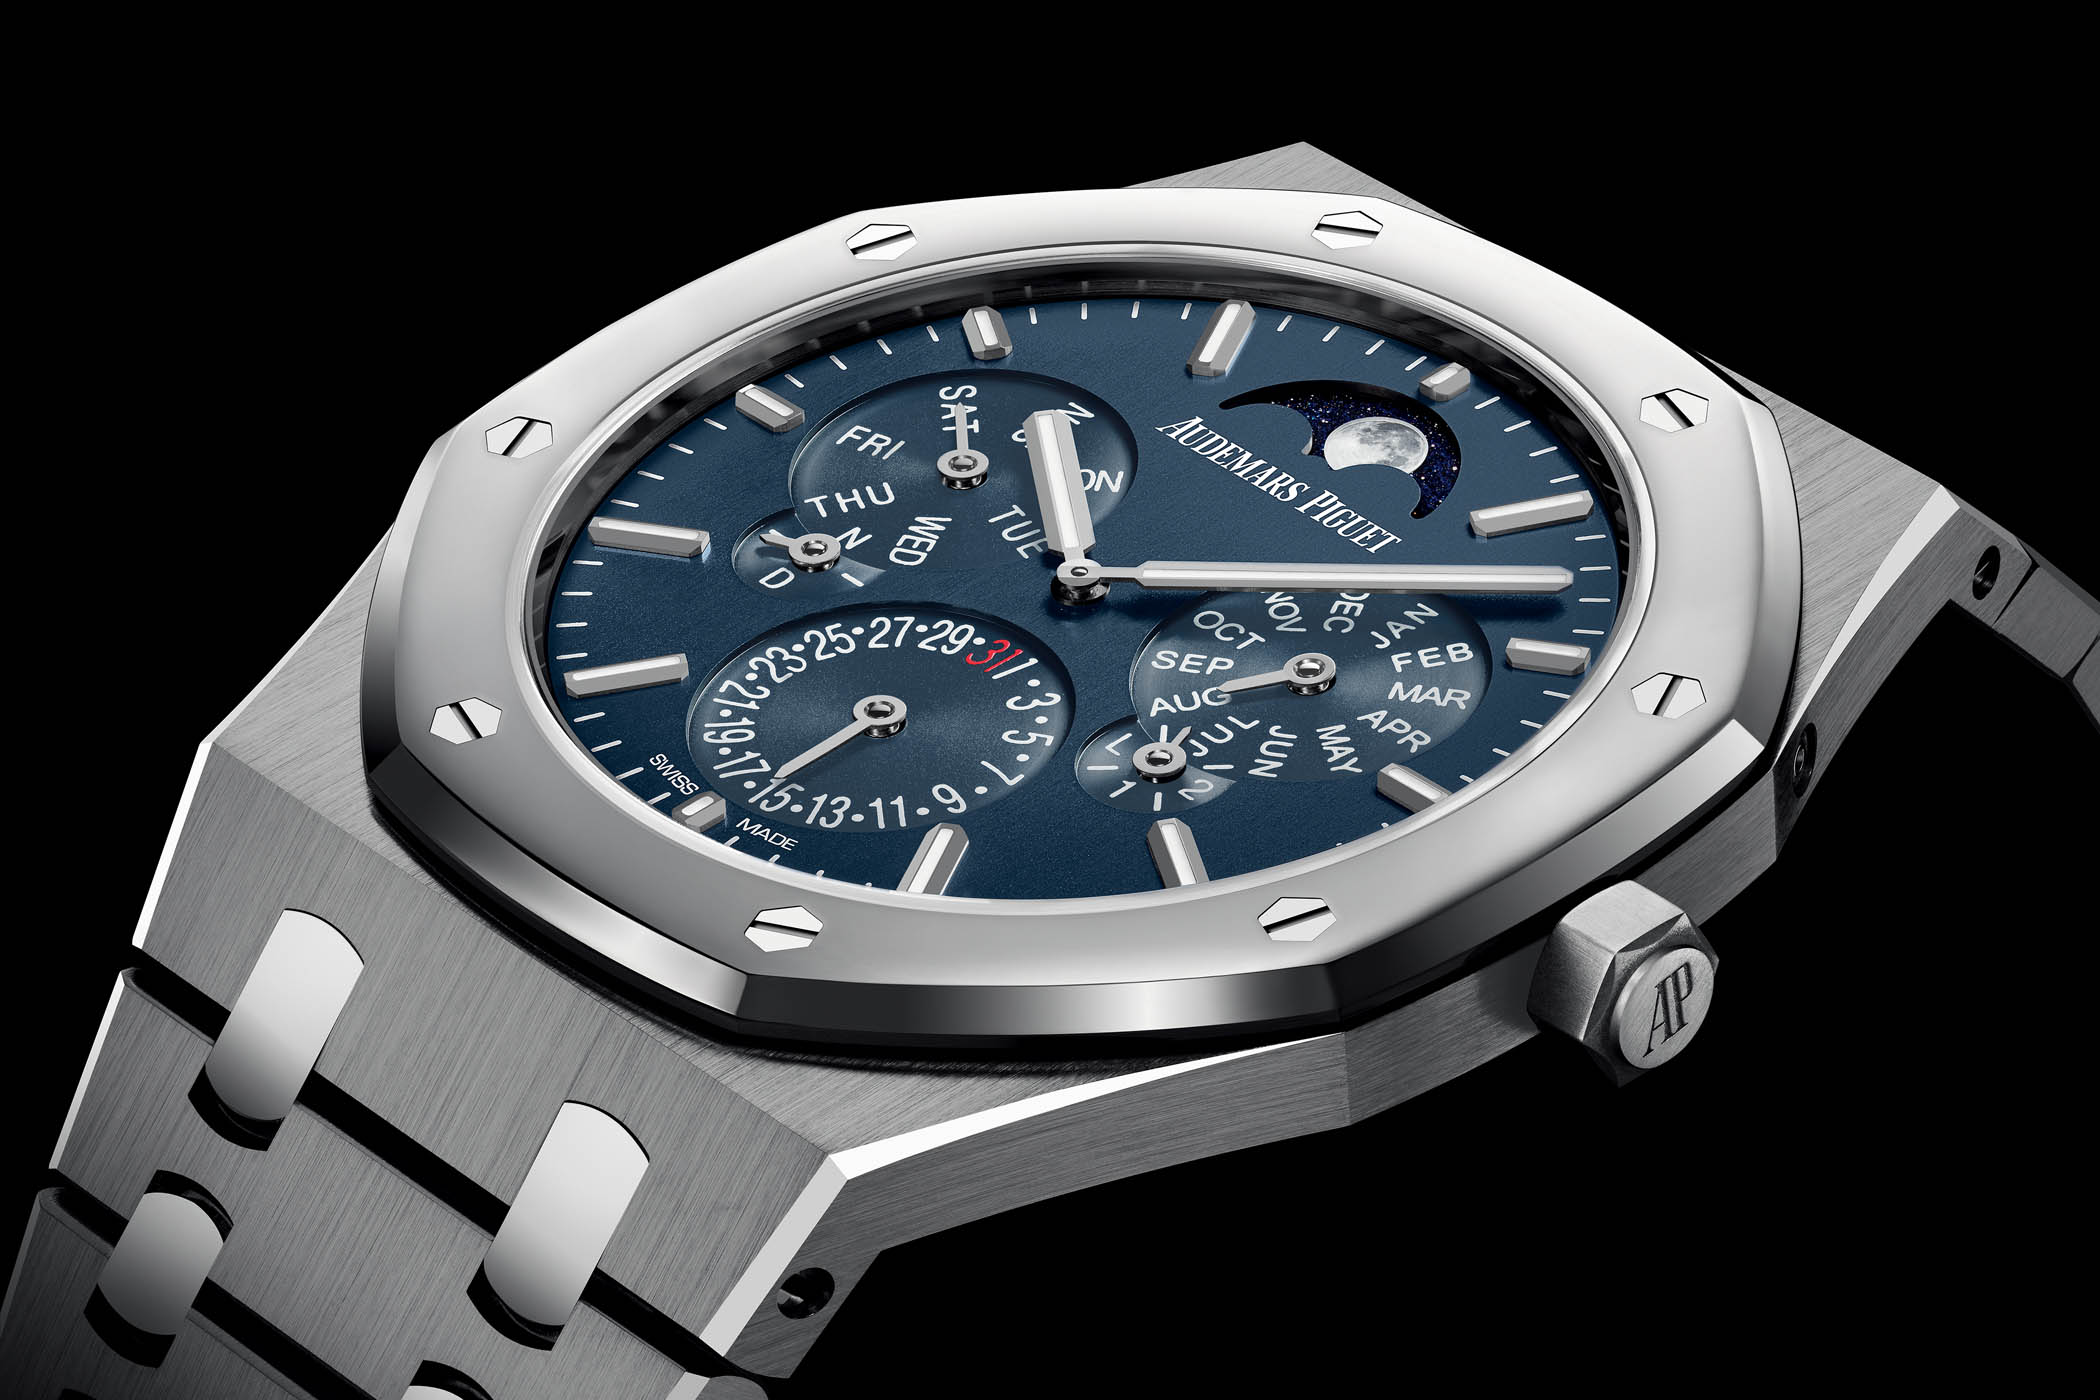 Audemars Piguet Royal Oak Selfwinding Perpetual Calendar Ultra-Thin RD2 based 26586IP.OO.1240IP.01